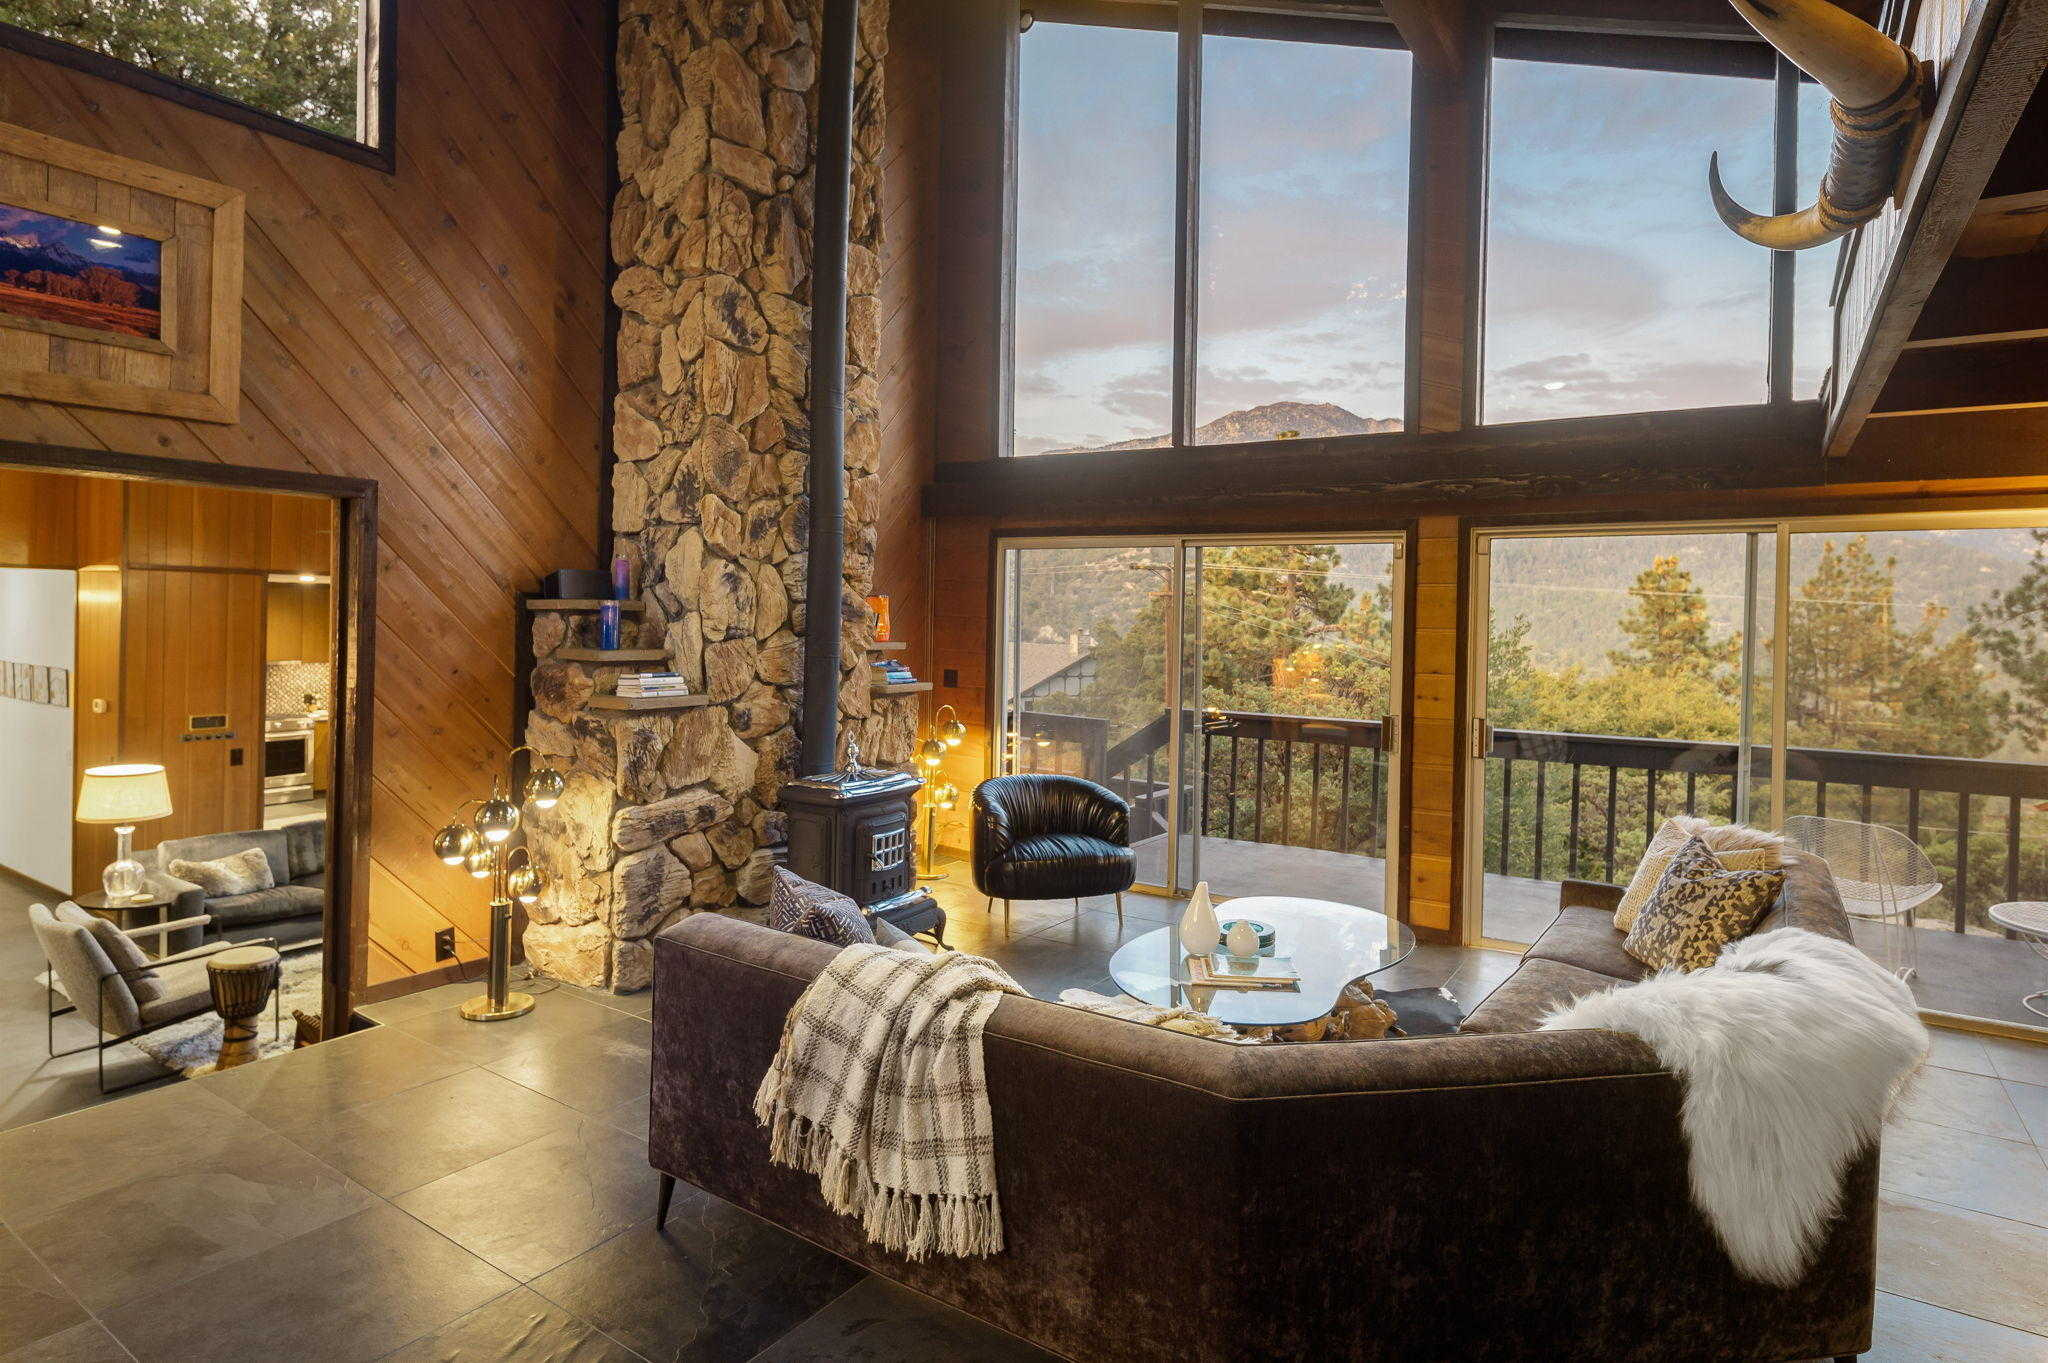 $949,000 - 4Br/4Ba -  for Sale in Not Applicable, Idyllwild